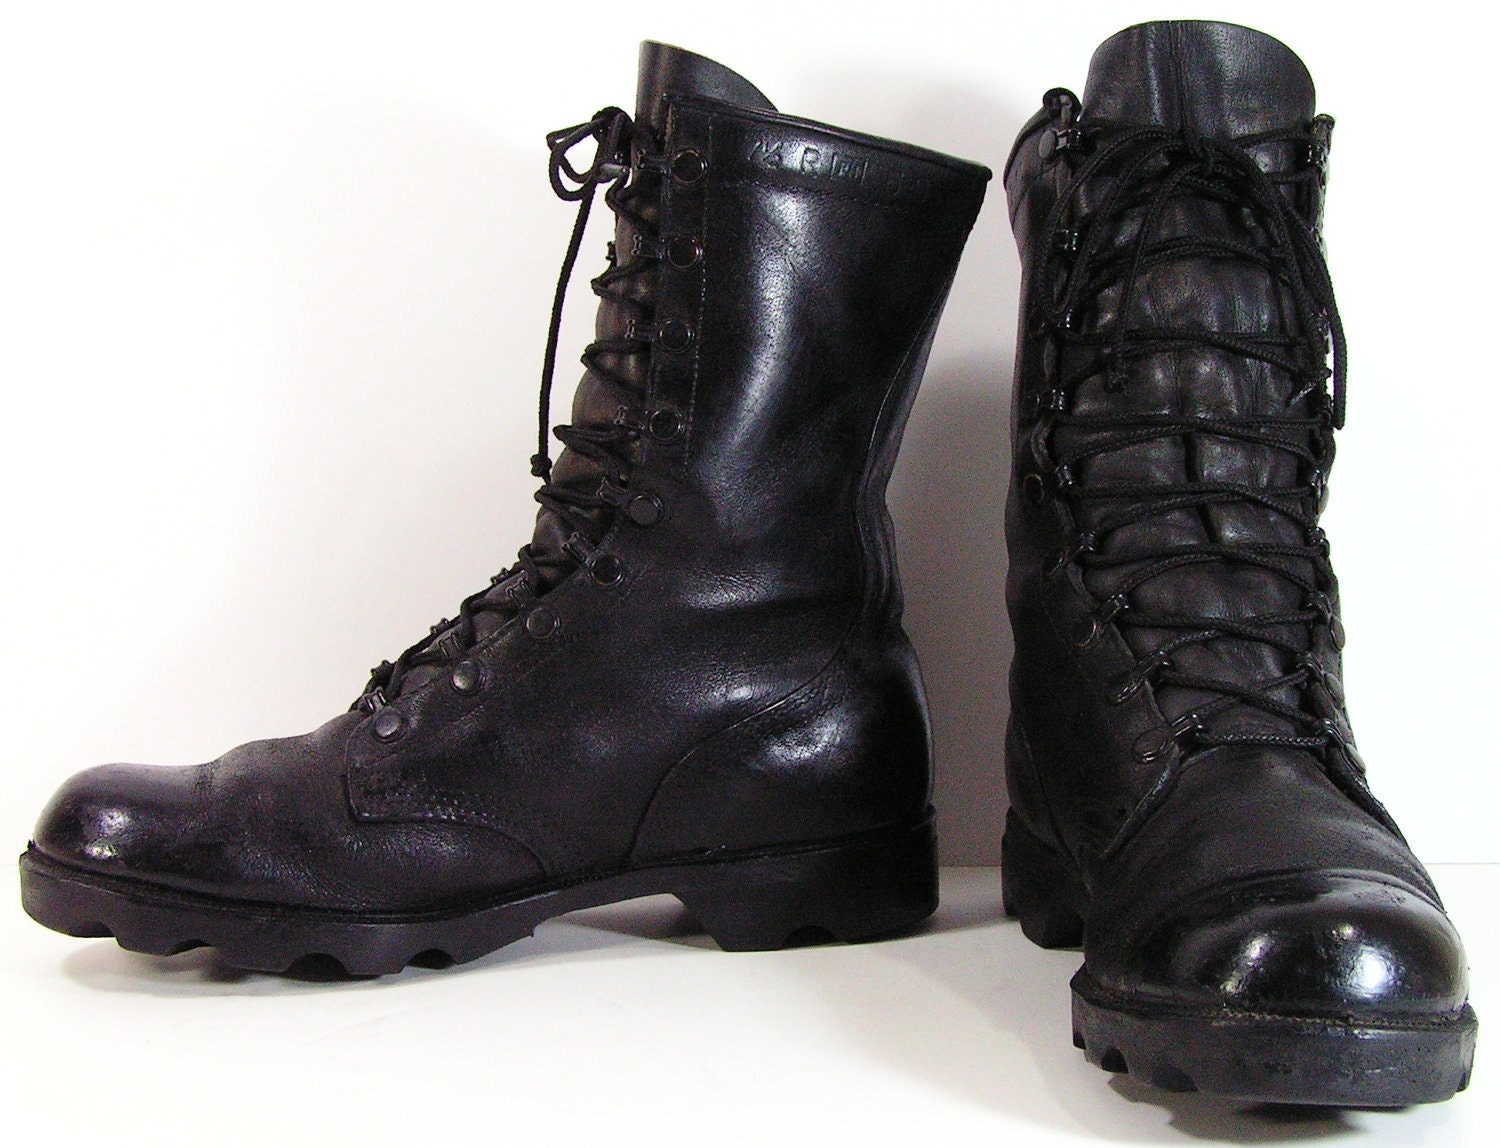 Men's Black Leather Boots Vintage | NATIONAL SHERIFFS' ASSOCIATION